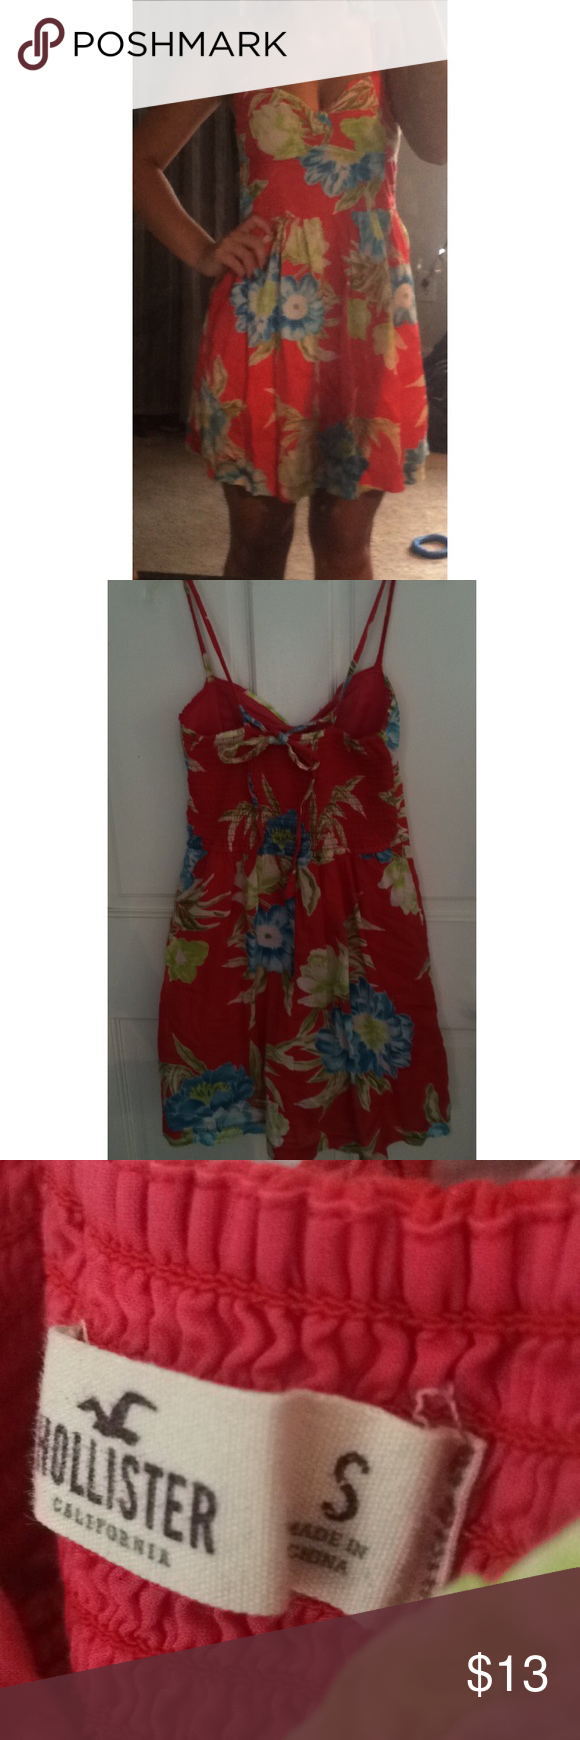 Hollister floral dress red dress with blue and green accents. adjustable straps in back. Hollister Dresses Mini